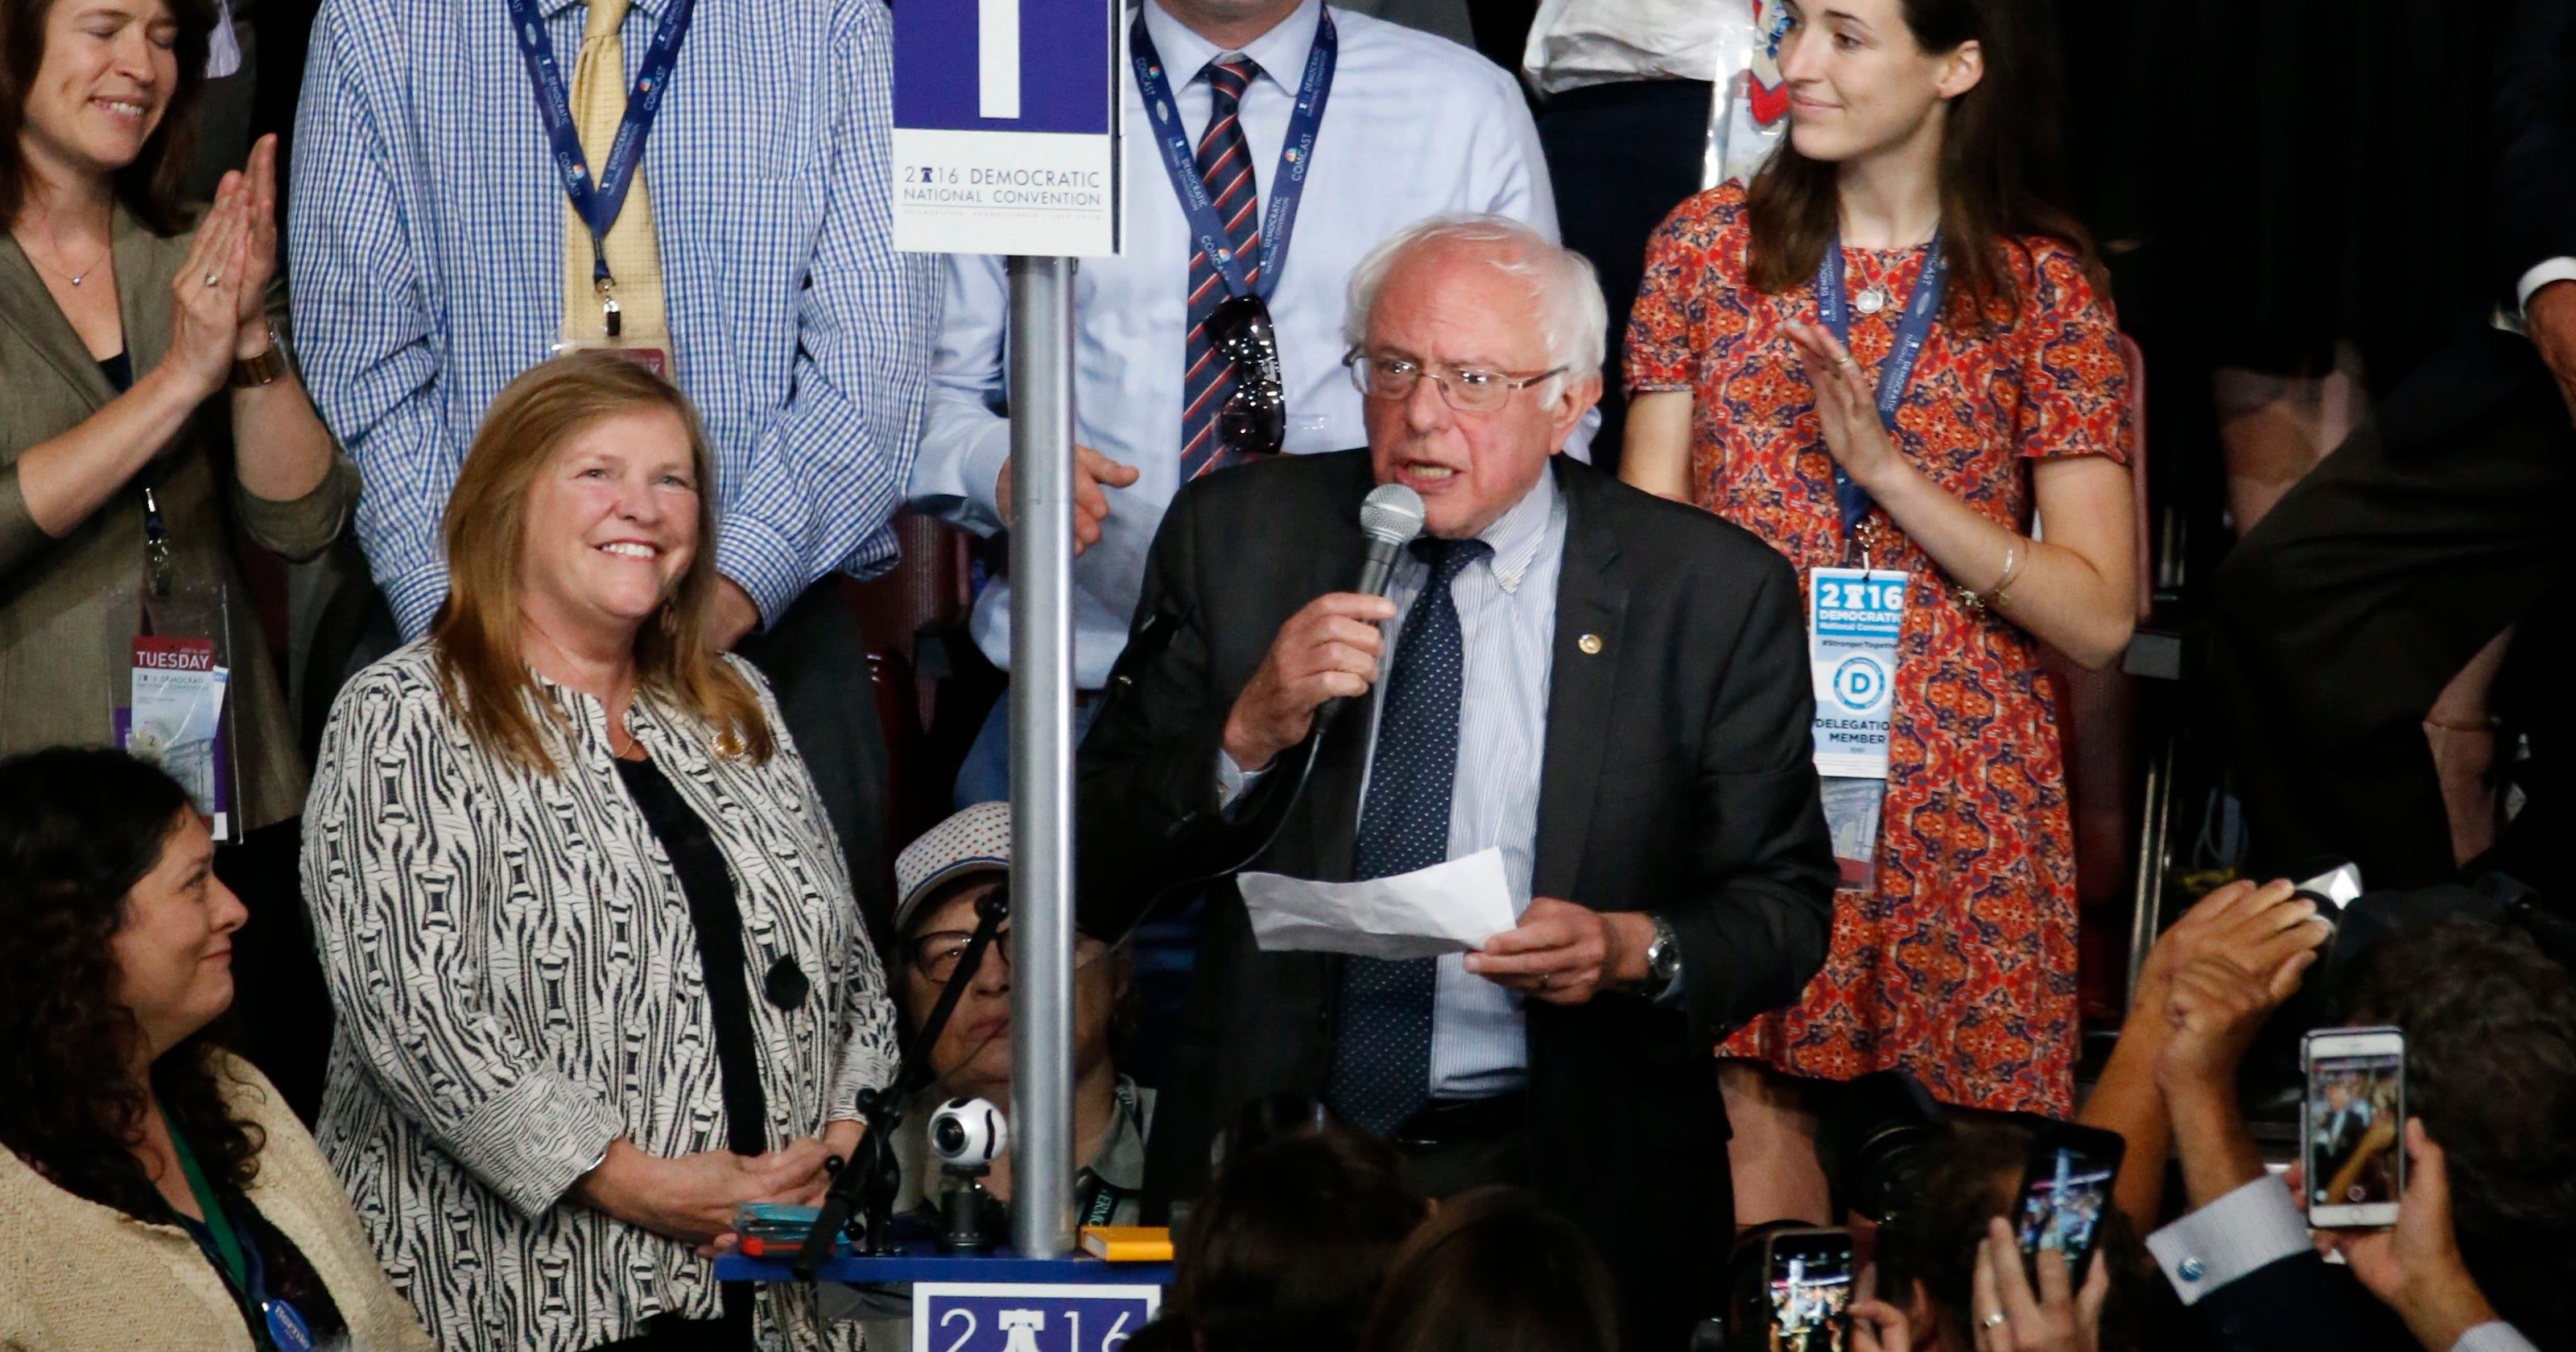 Sanders makes an important gesture during roll call